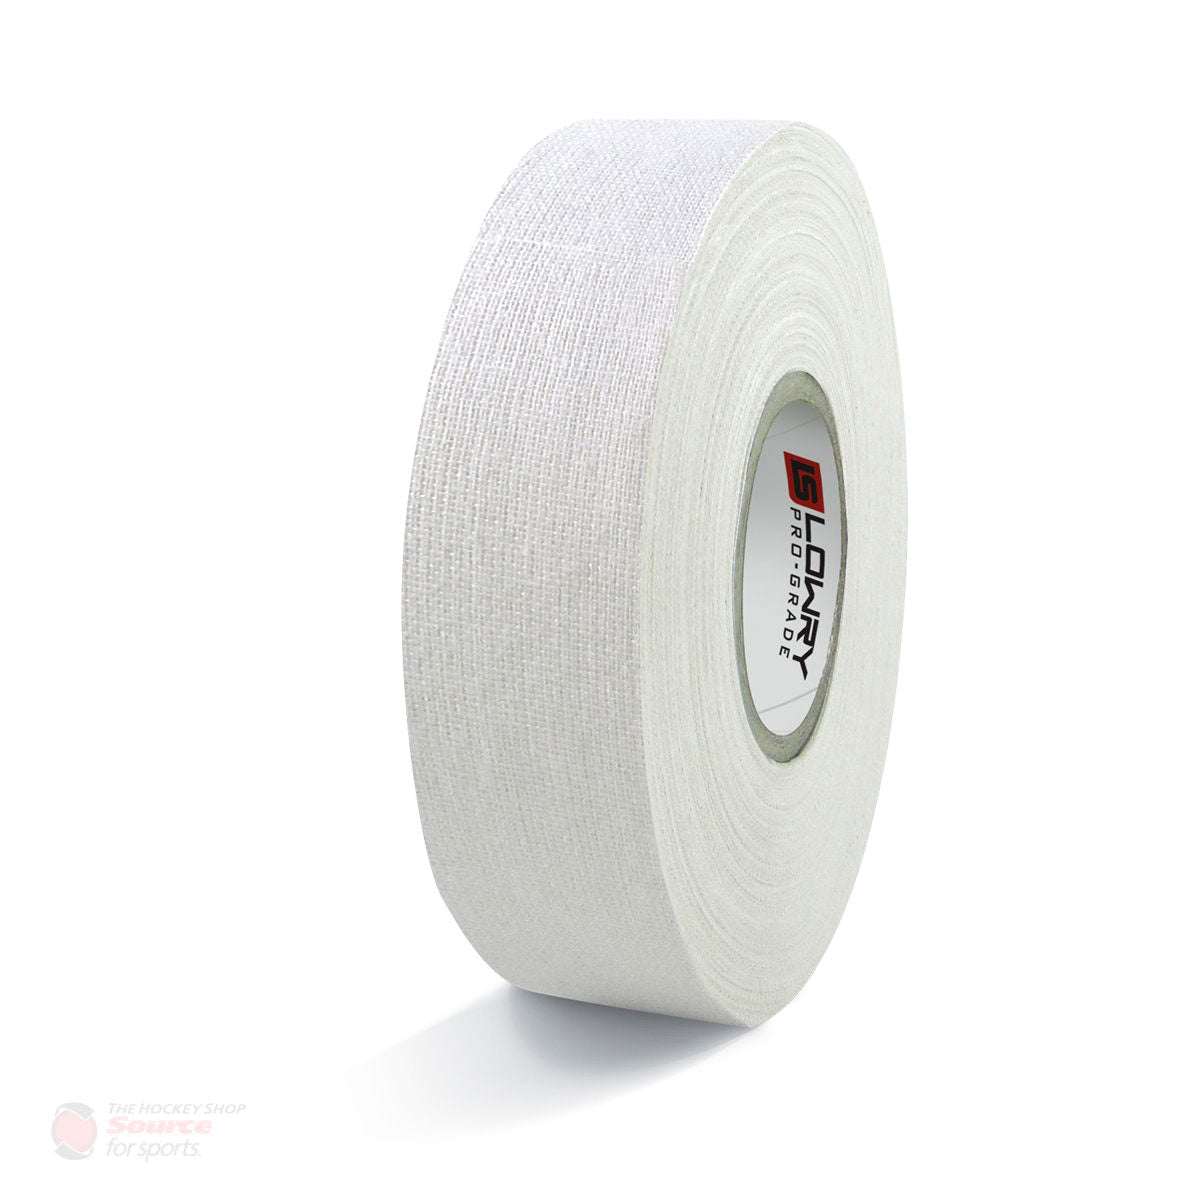 Lowry Sports Pro-Grade White Hockey Stick Tape - Skinny